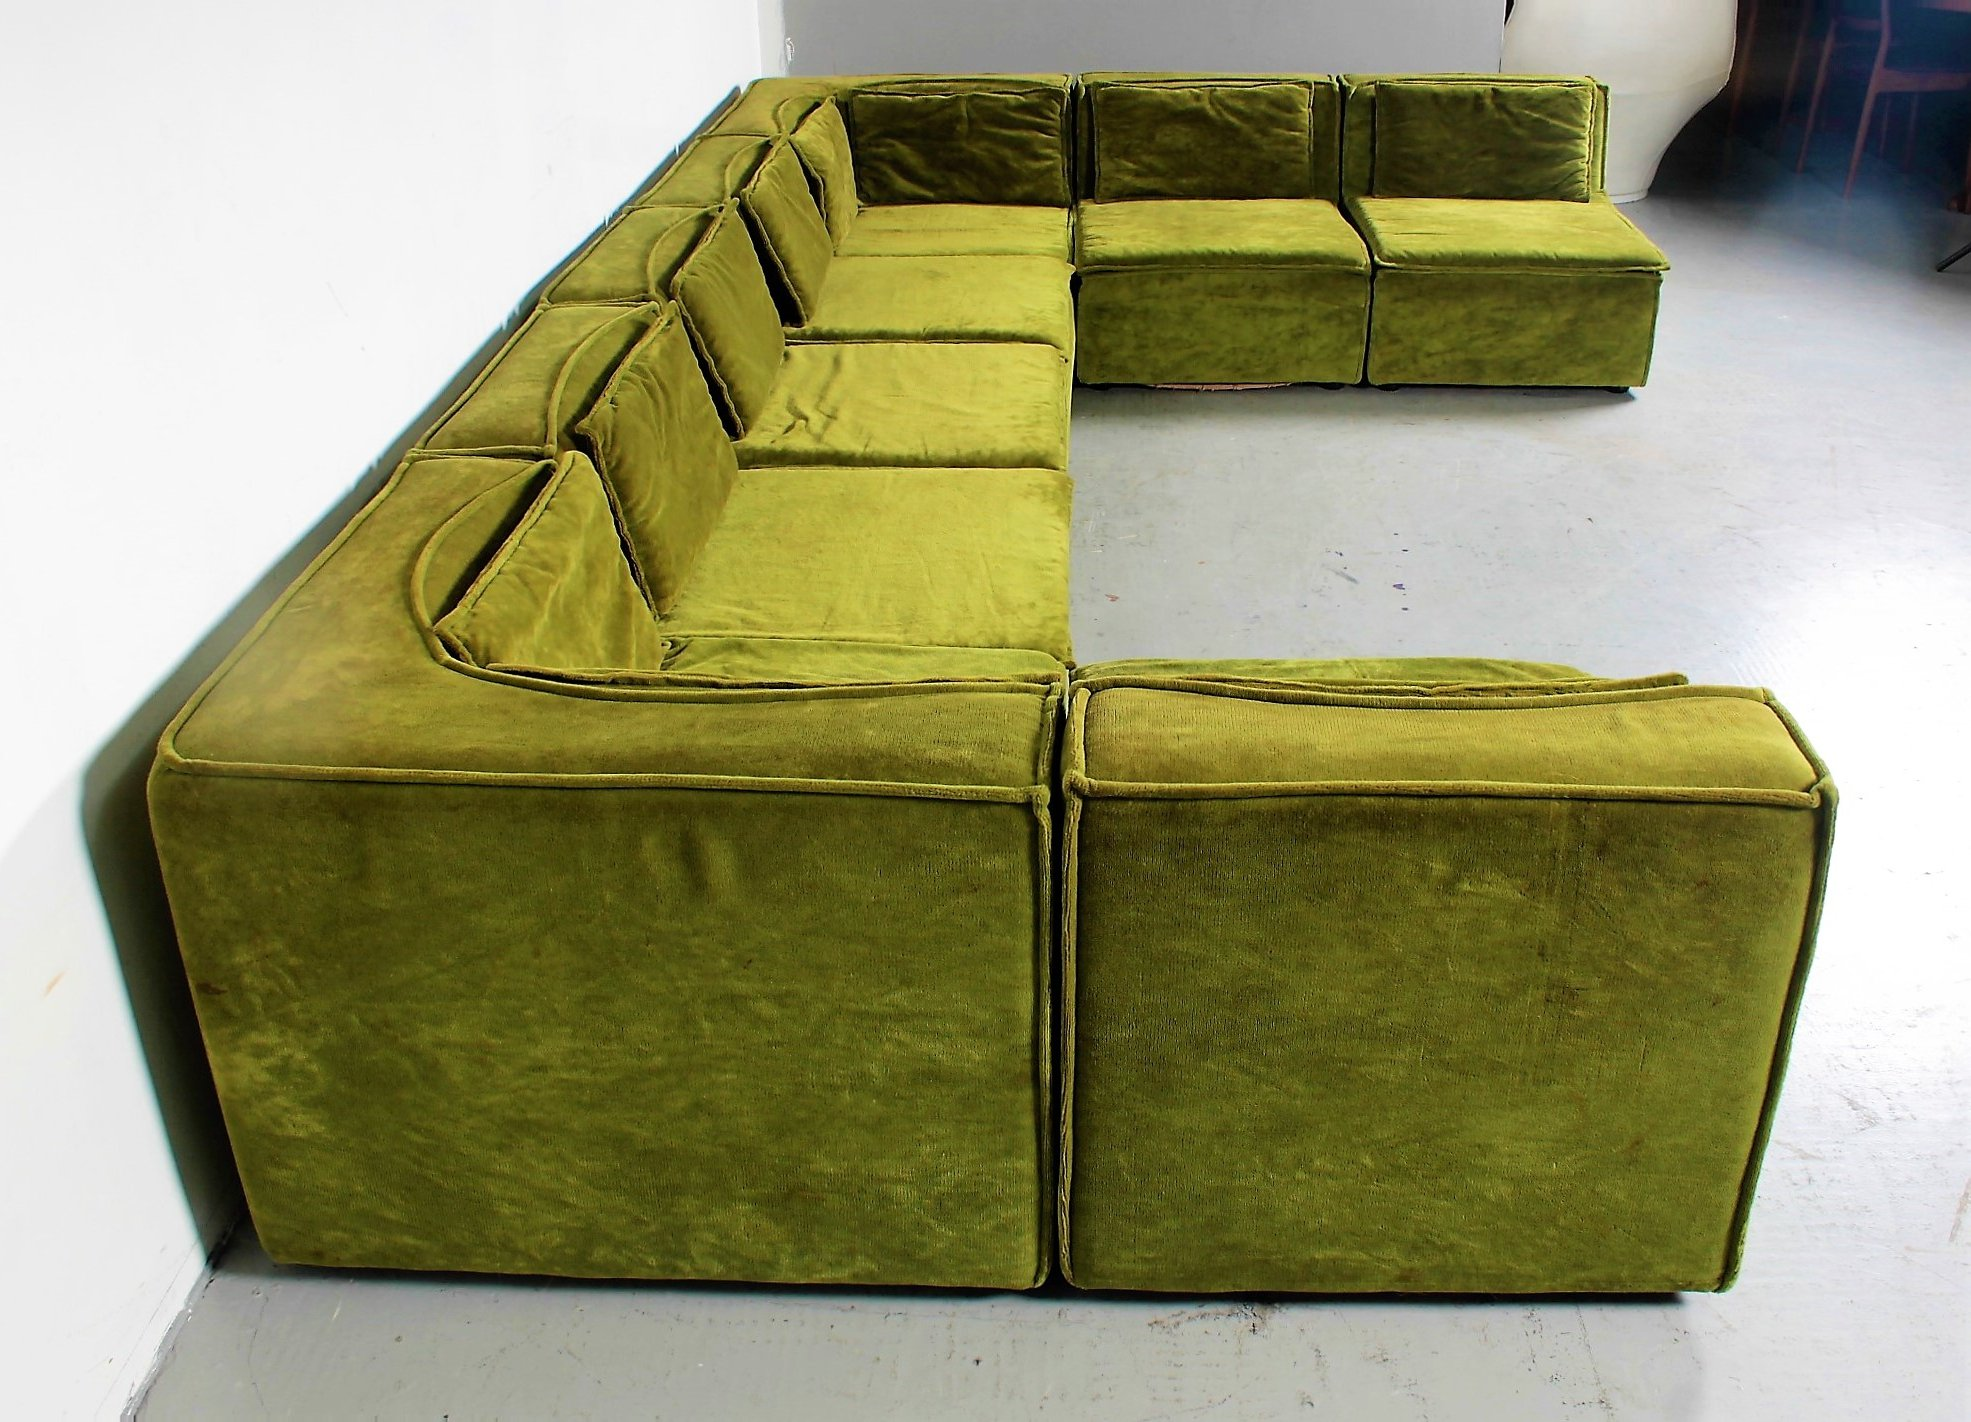 Giant 8 Piece Sectional Sofa In Green Velvet With Additional Cushions 102311